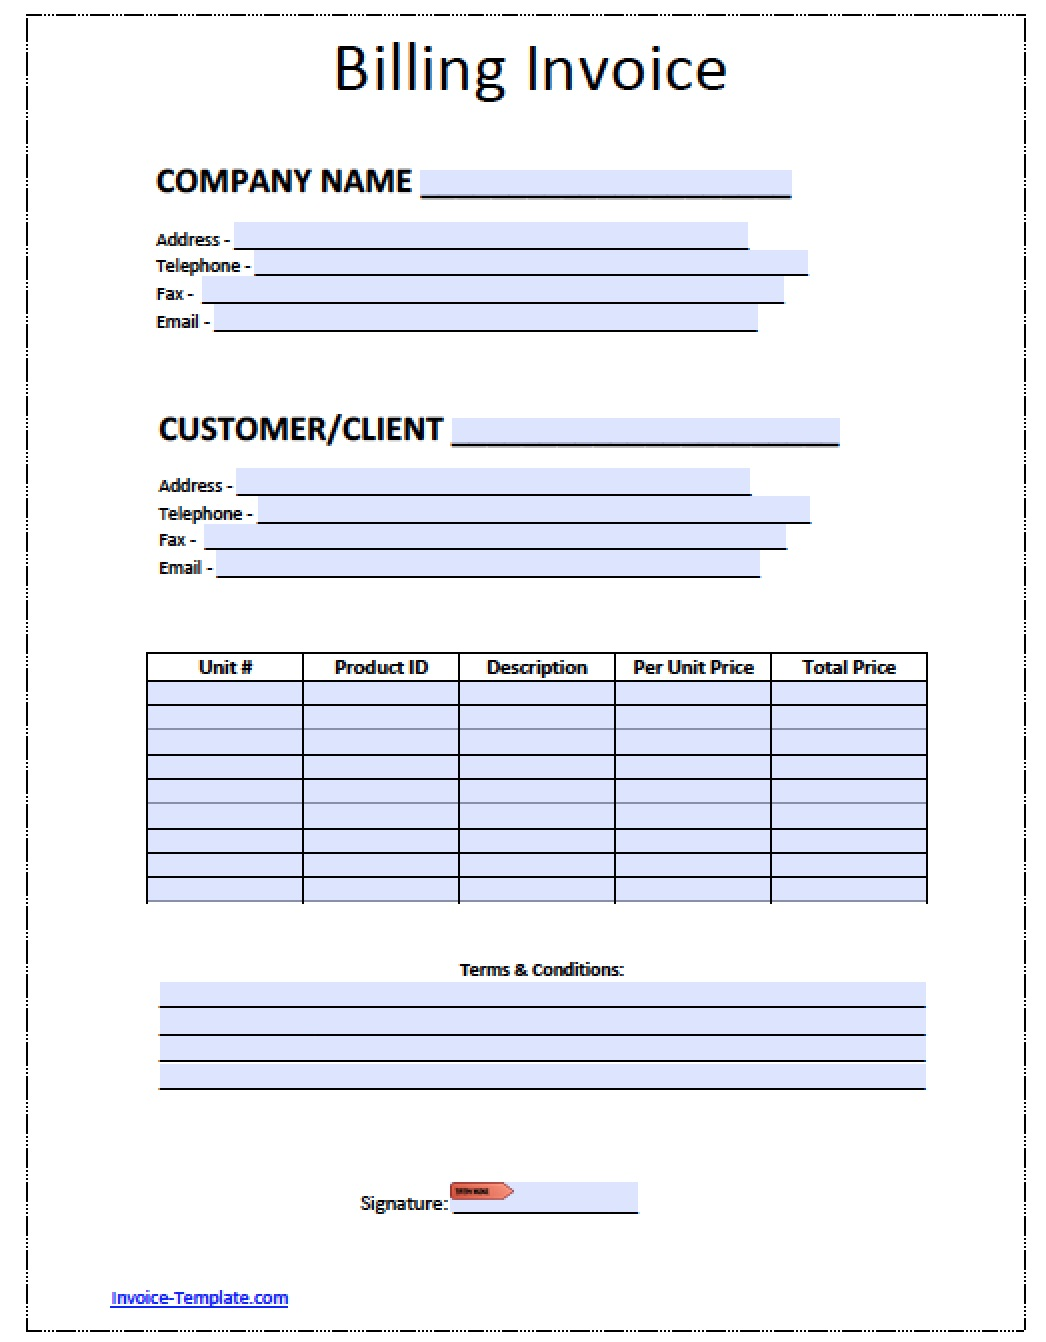 Carsforlessus  Sweet Billing Invoice Invoices Faq U Cloudflare Support Billing  With Exciting Free Billing Invoice Template  Excel  Pdf  Word Doc  Billing With Cute Blank Tax Invoice Template Also Best Buy Return Without Receipt In Addition Service Tax Invoice And Receipt Definition As Well As Receipt In Spanish Additionally Invoices Format From Happytomco With Carsforlessus  Exciting Billing Invoice Invoices Faq U Cloudflare Support Billing  With Cute Free Billing Invoice Template  Excel  Pdf  Word Doc  Billing And Sweet Blank Tax Invoice Template Also Best Buy Return Without Receipt In Addition Service Tax Invoice From Happytomco